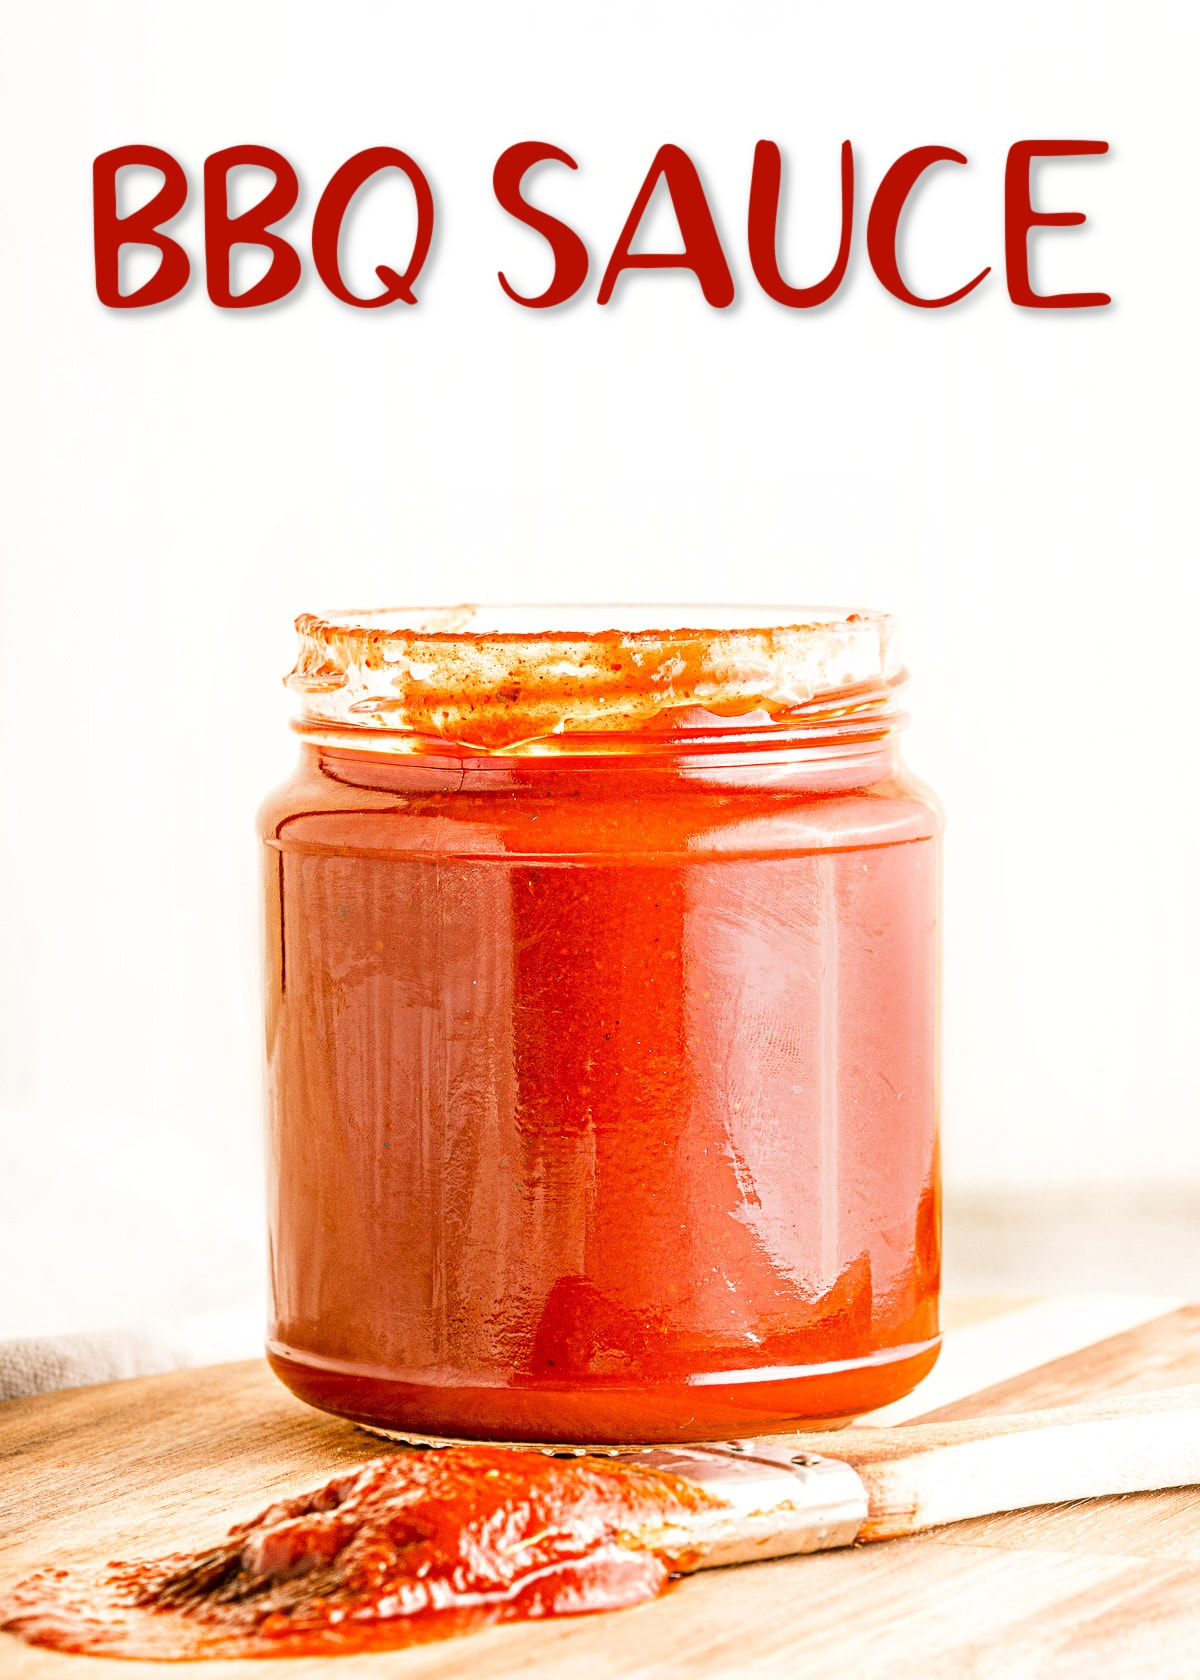 homemade bbq sauce is glass jar sitting on wood cutting board with title overlay at top of image.